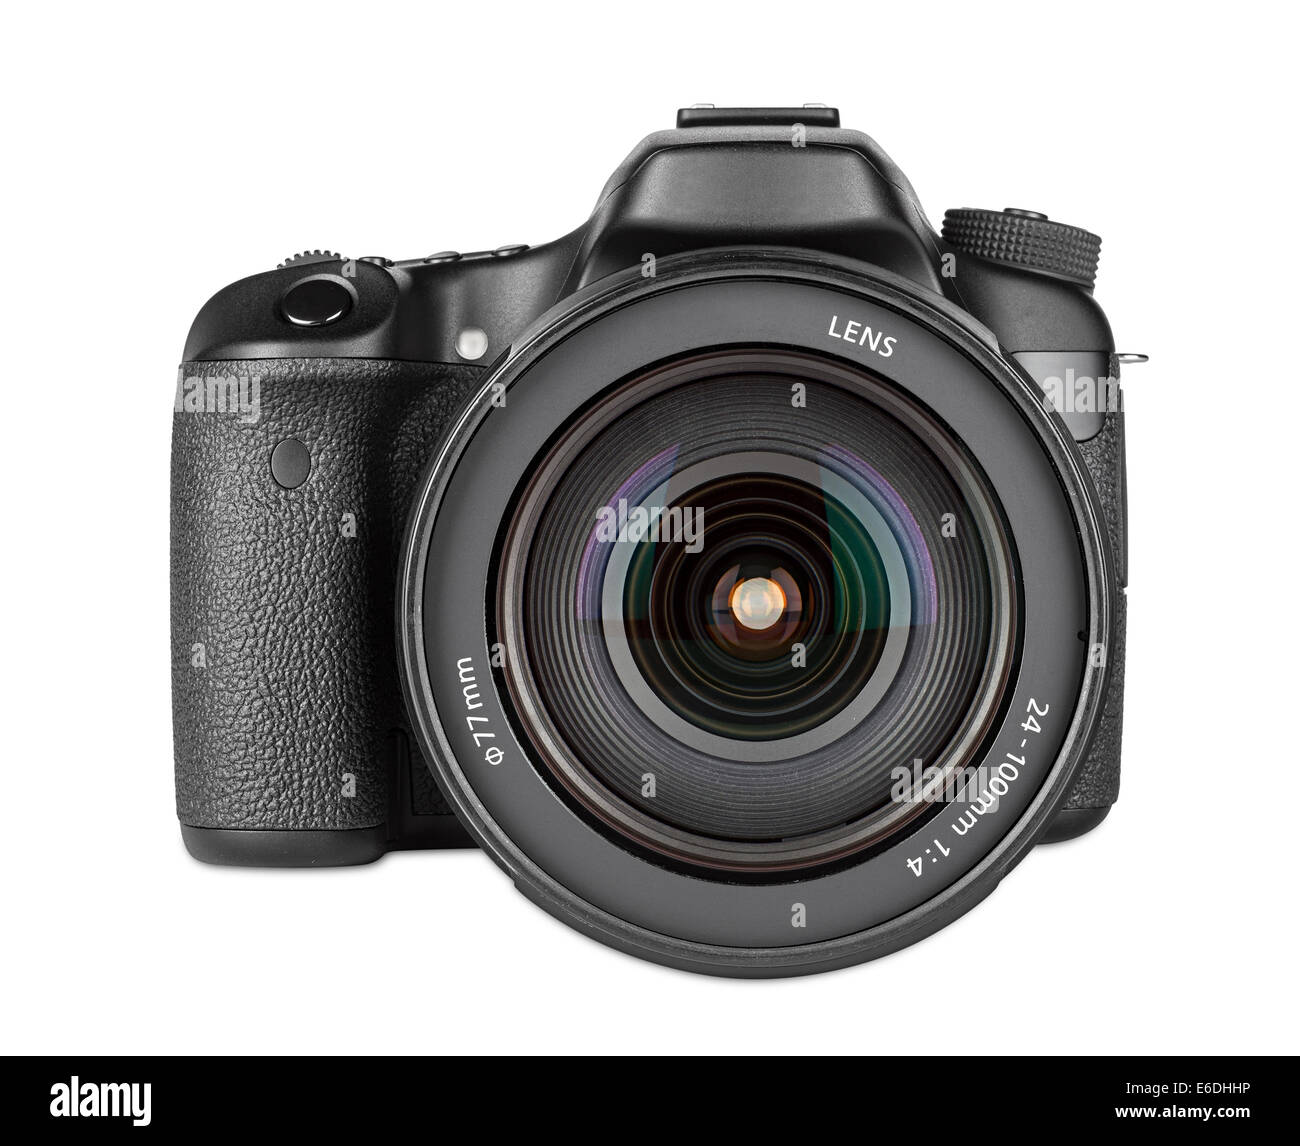 dslr camera with zoom lens mounted - Stock Image